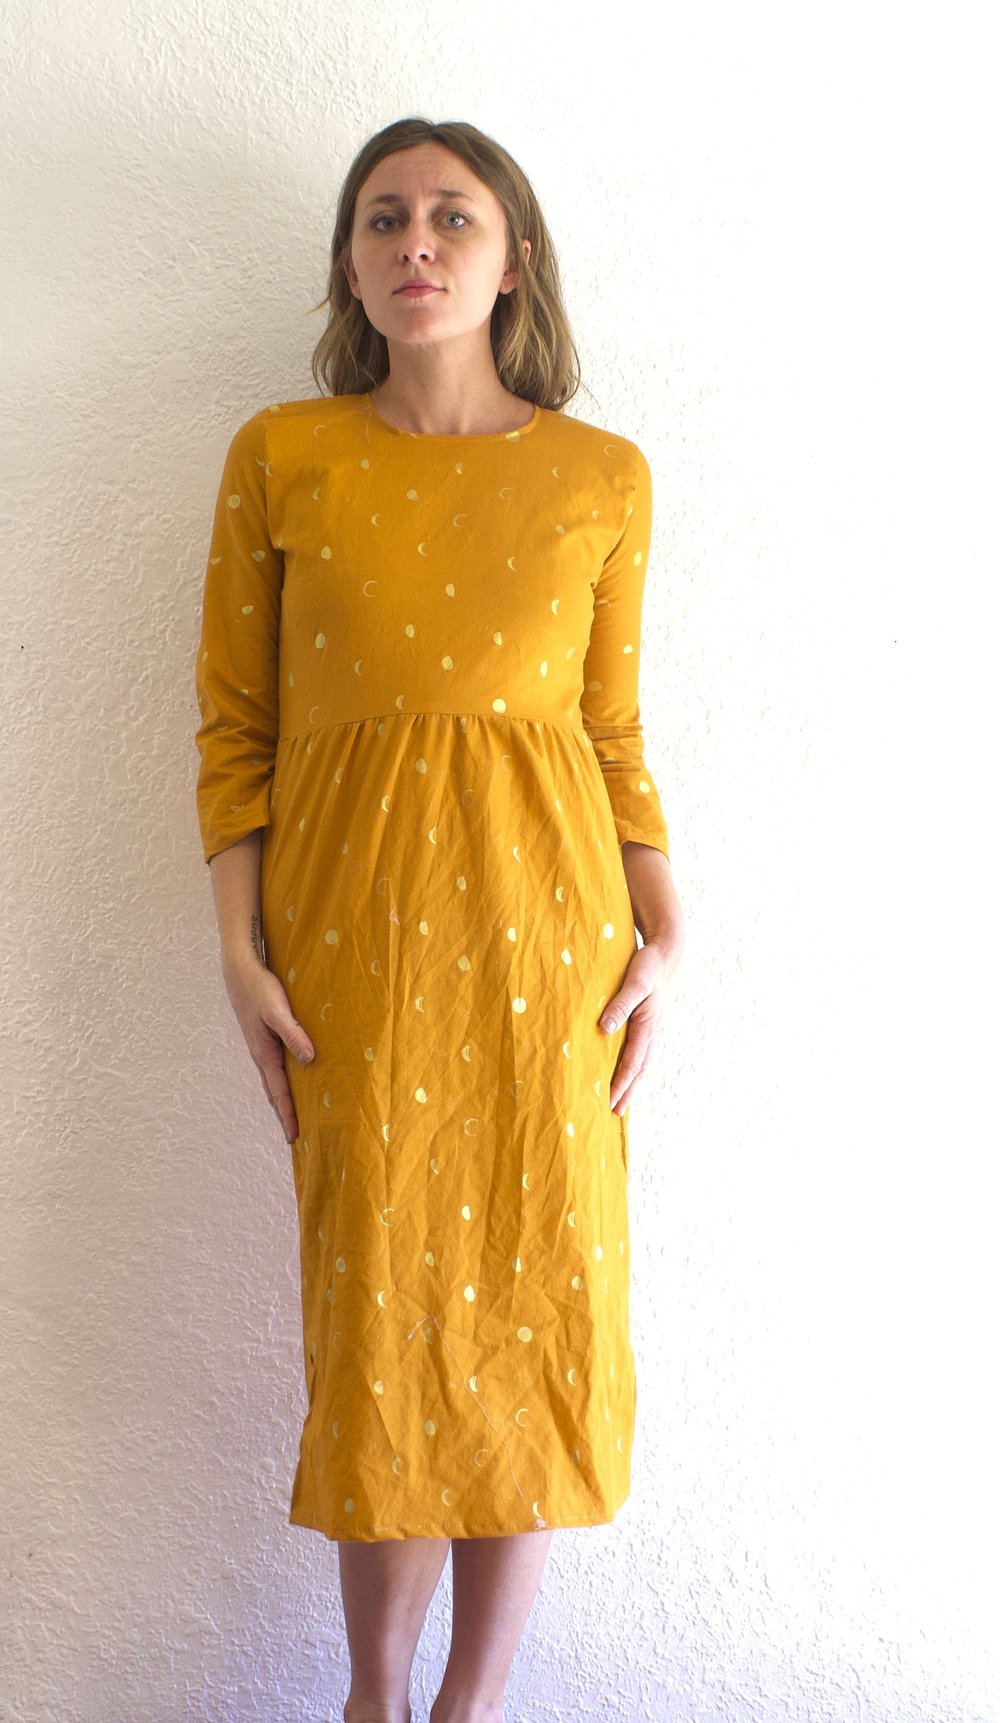 Golden Hour Dress - $80